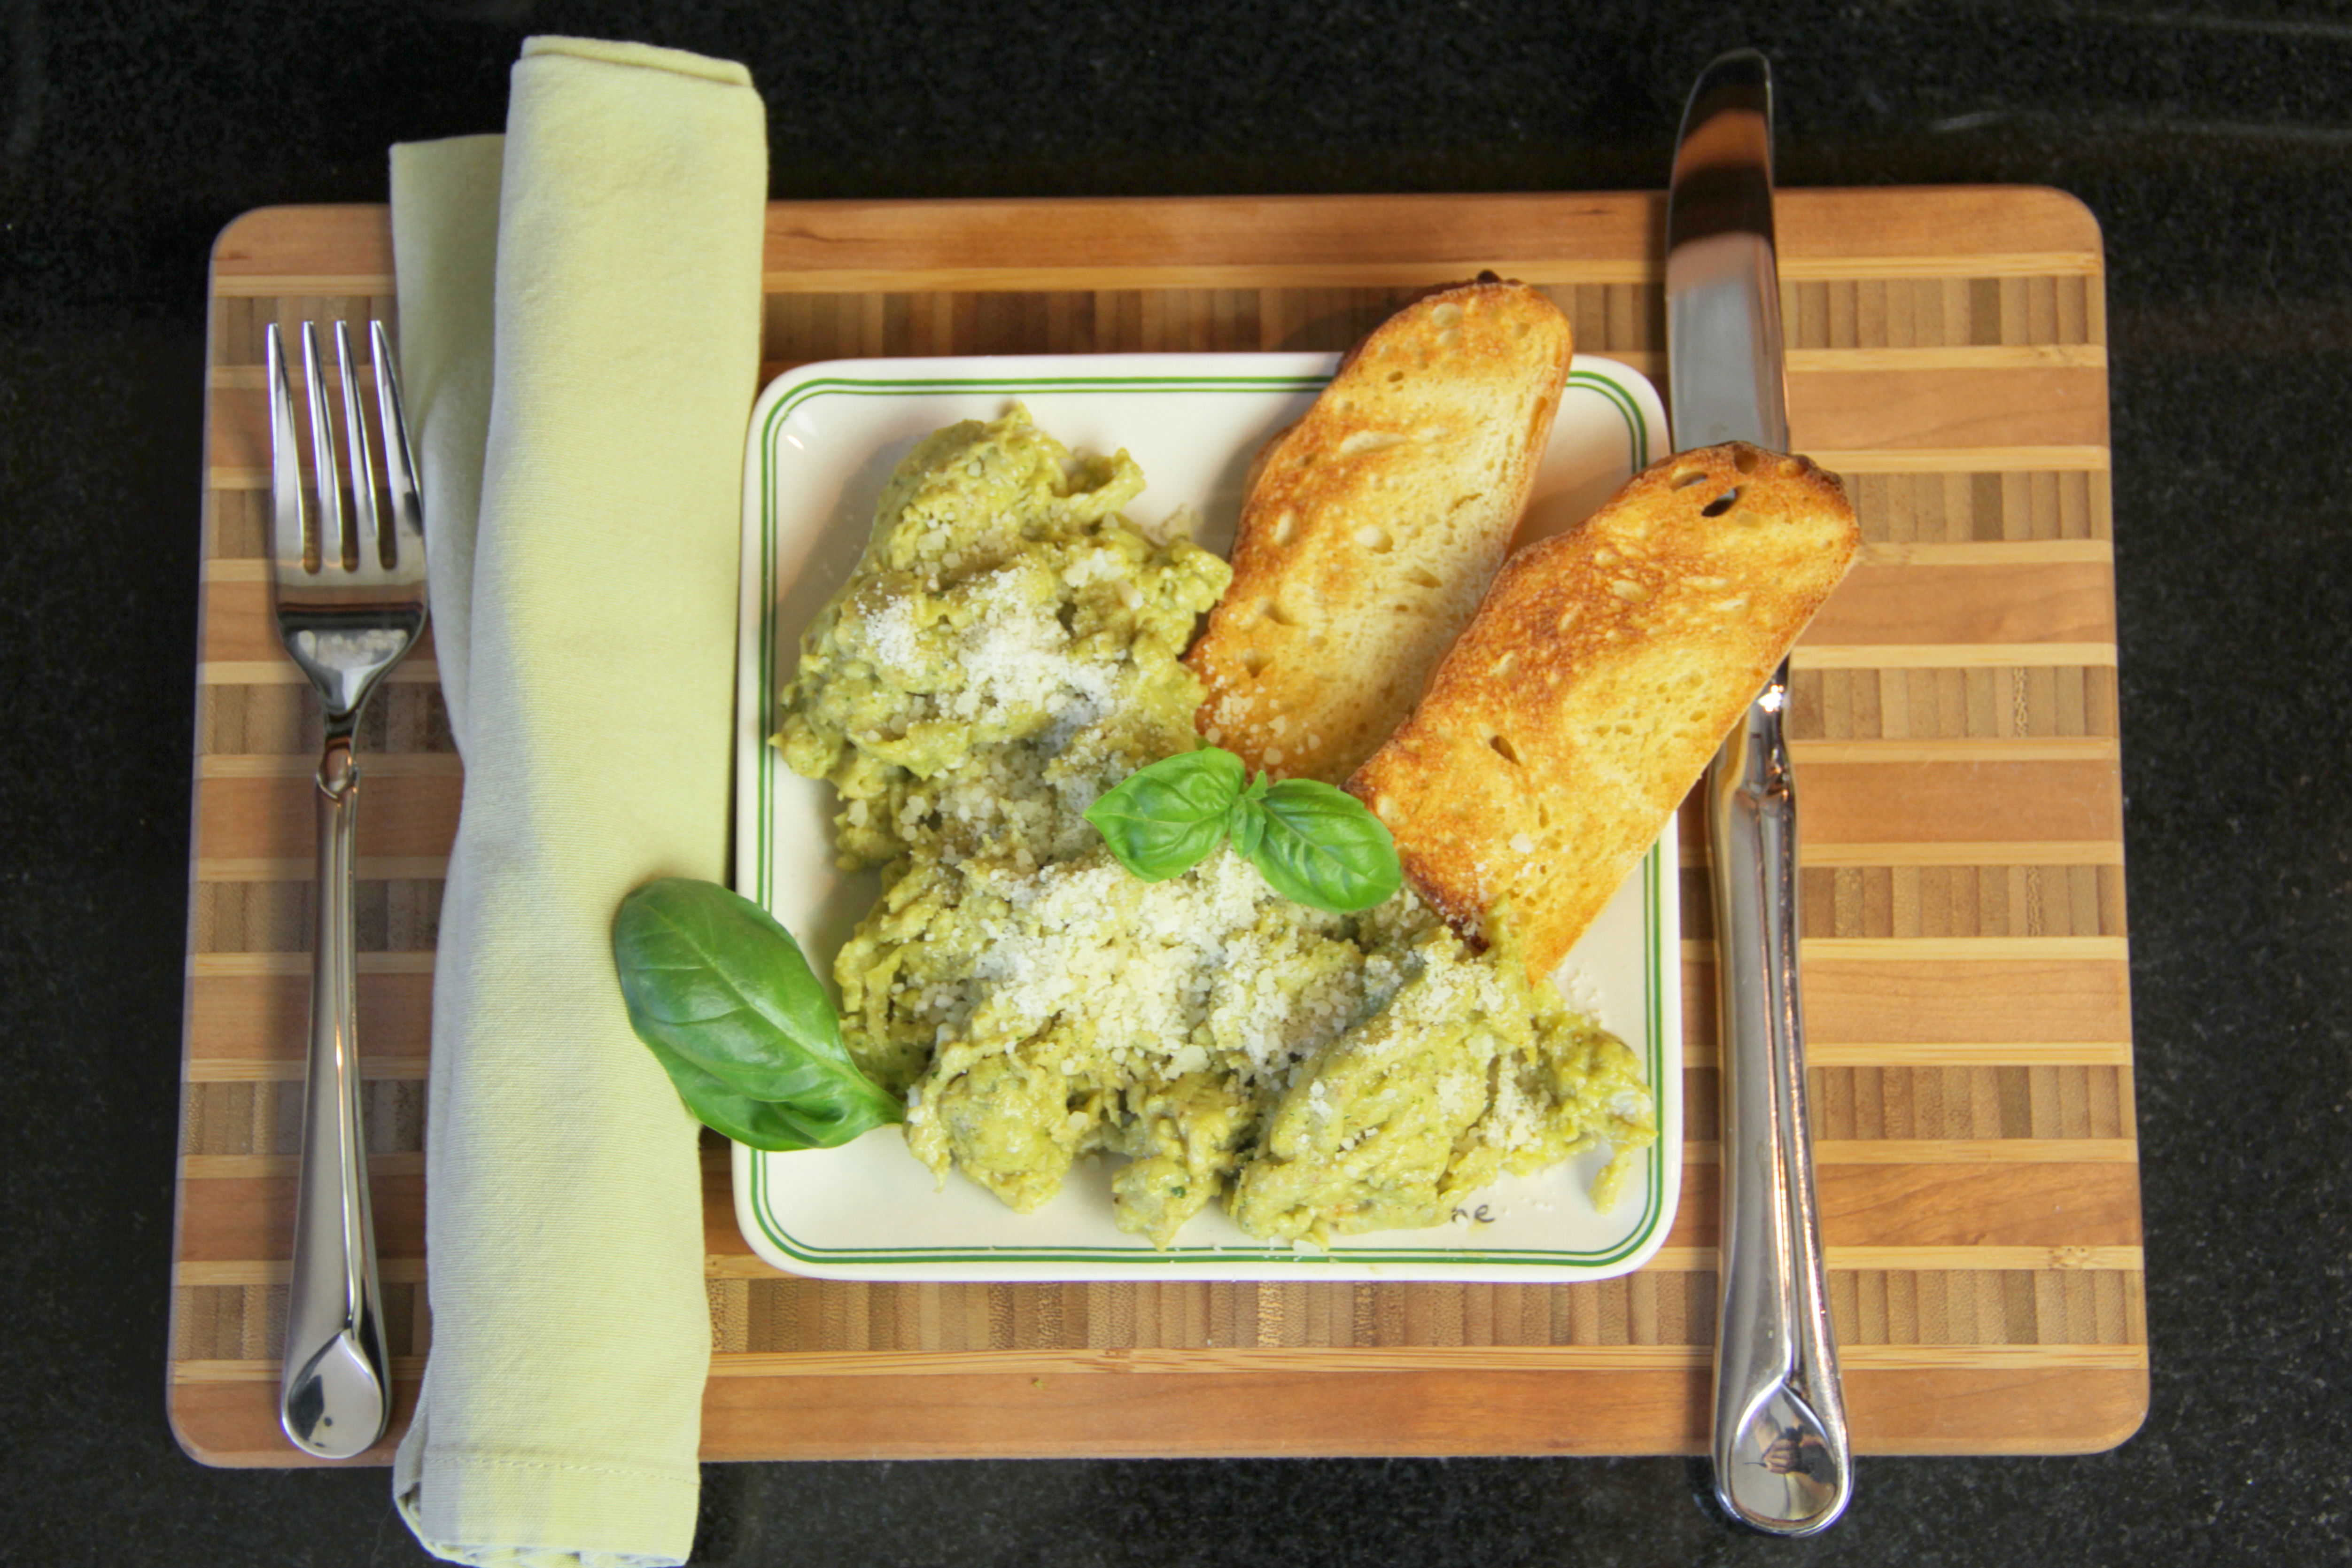 Thai Basil Pesto Scrambled Eggs 9